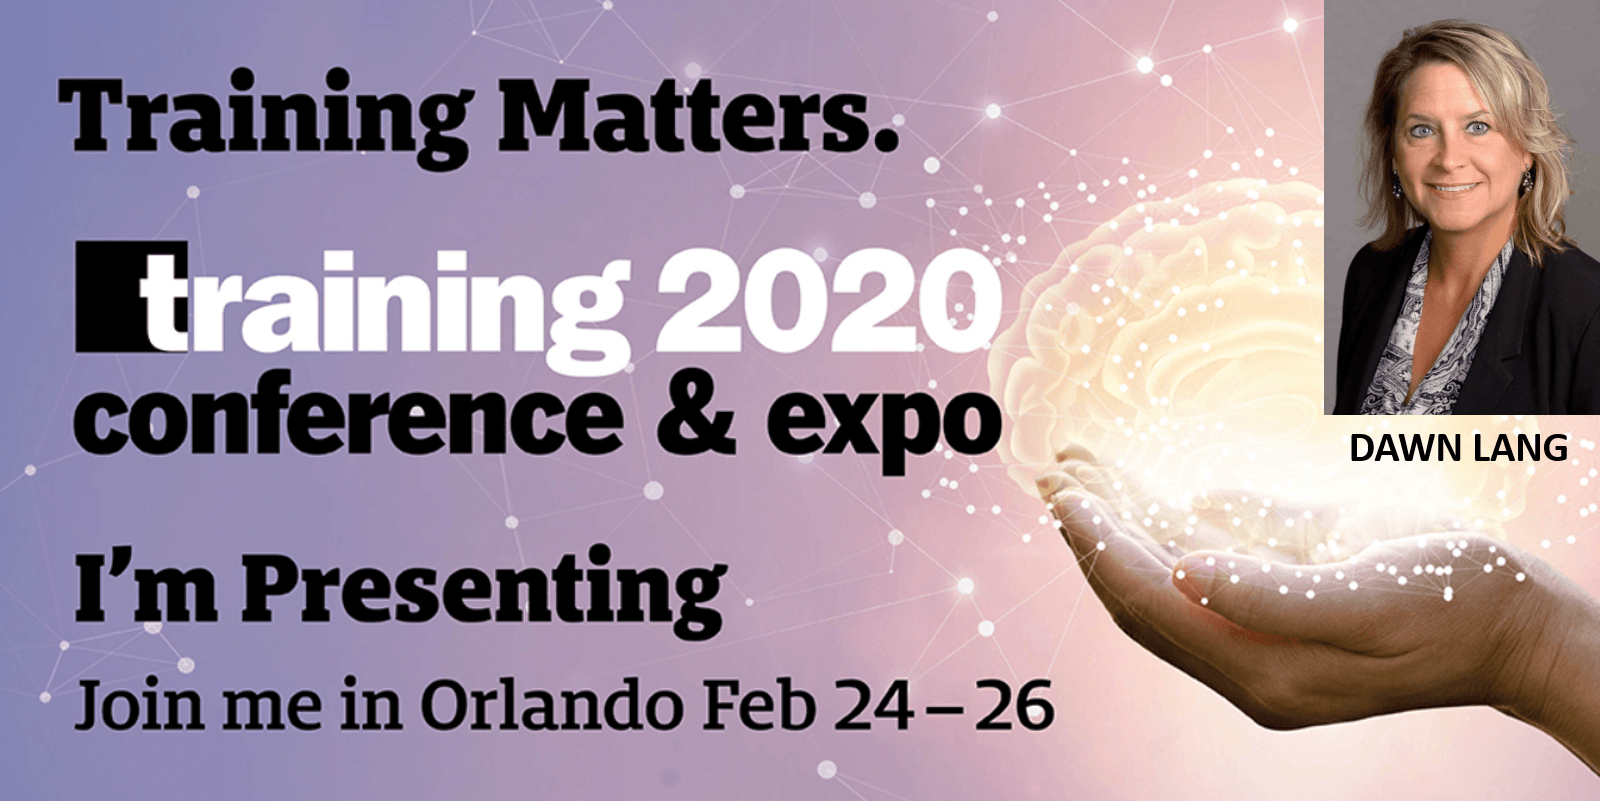 Presentation by Dawn Lang in Orlando, Florida for the training 2020 conference & expo